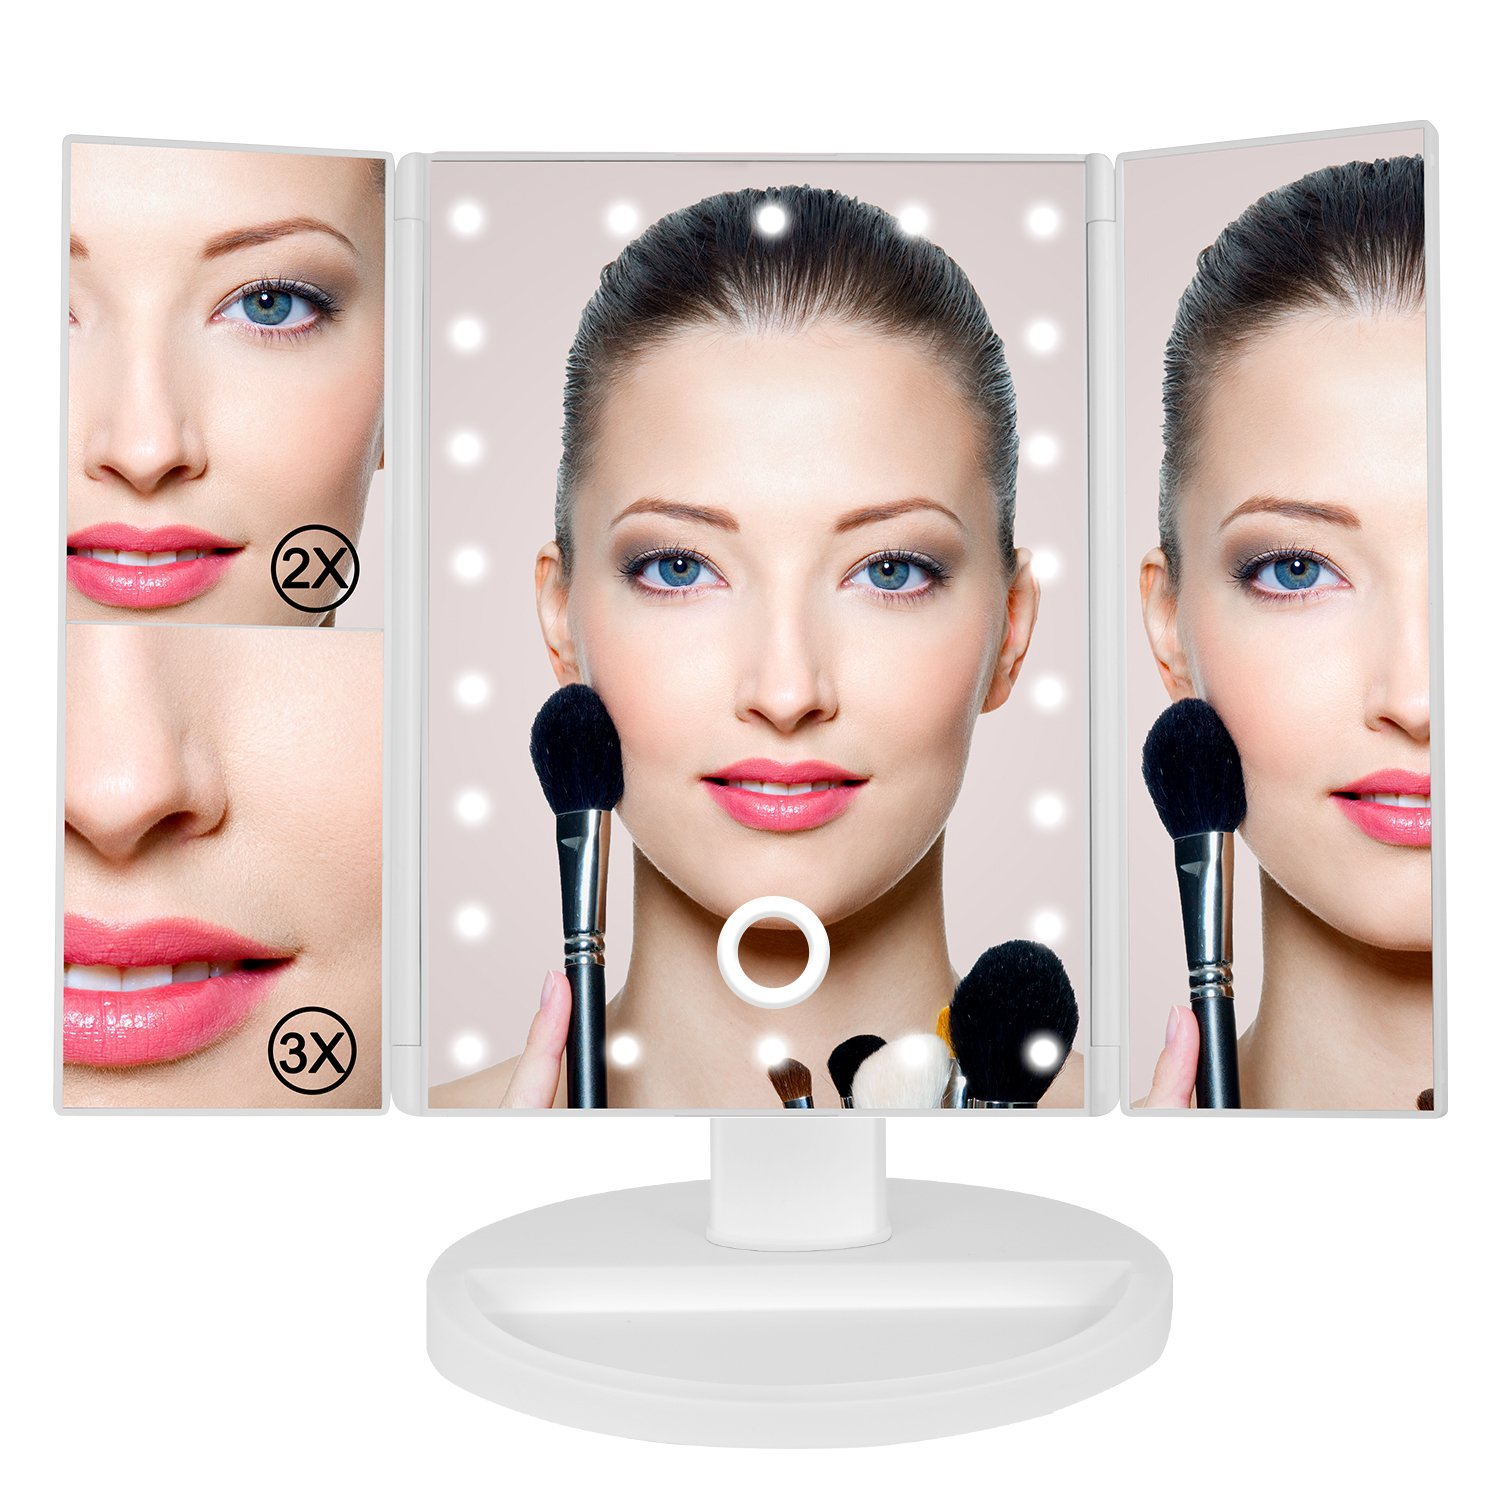 BEW Lighted Makeup Mirror LED Trifold Vanity Mirror with Touch Screen 1x/2x/3x Magnification, Valentine's Day Gift (White)